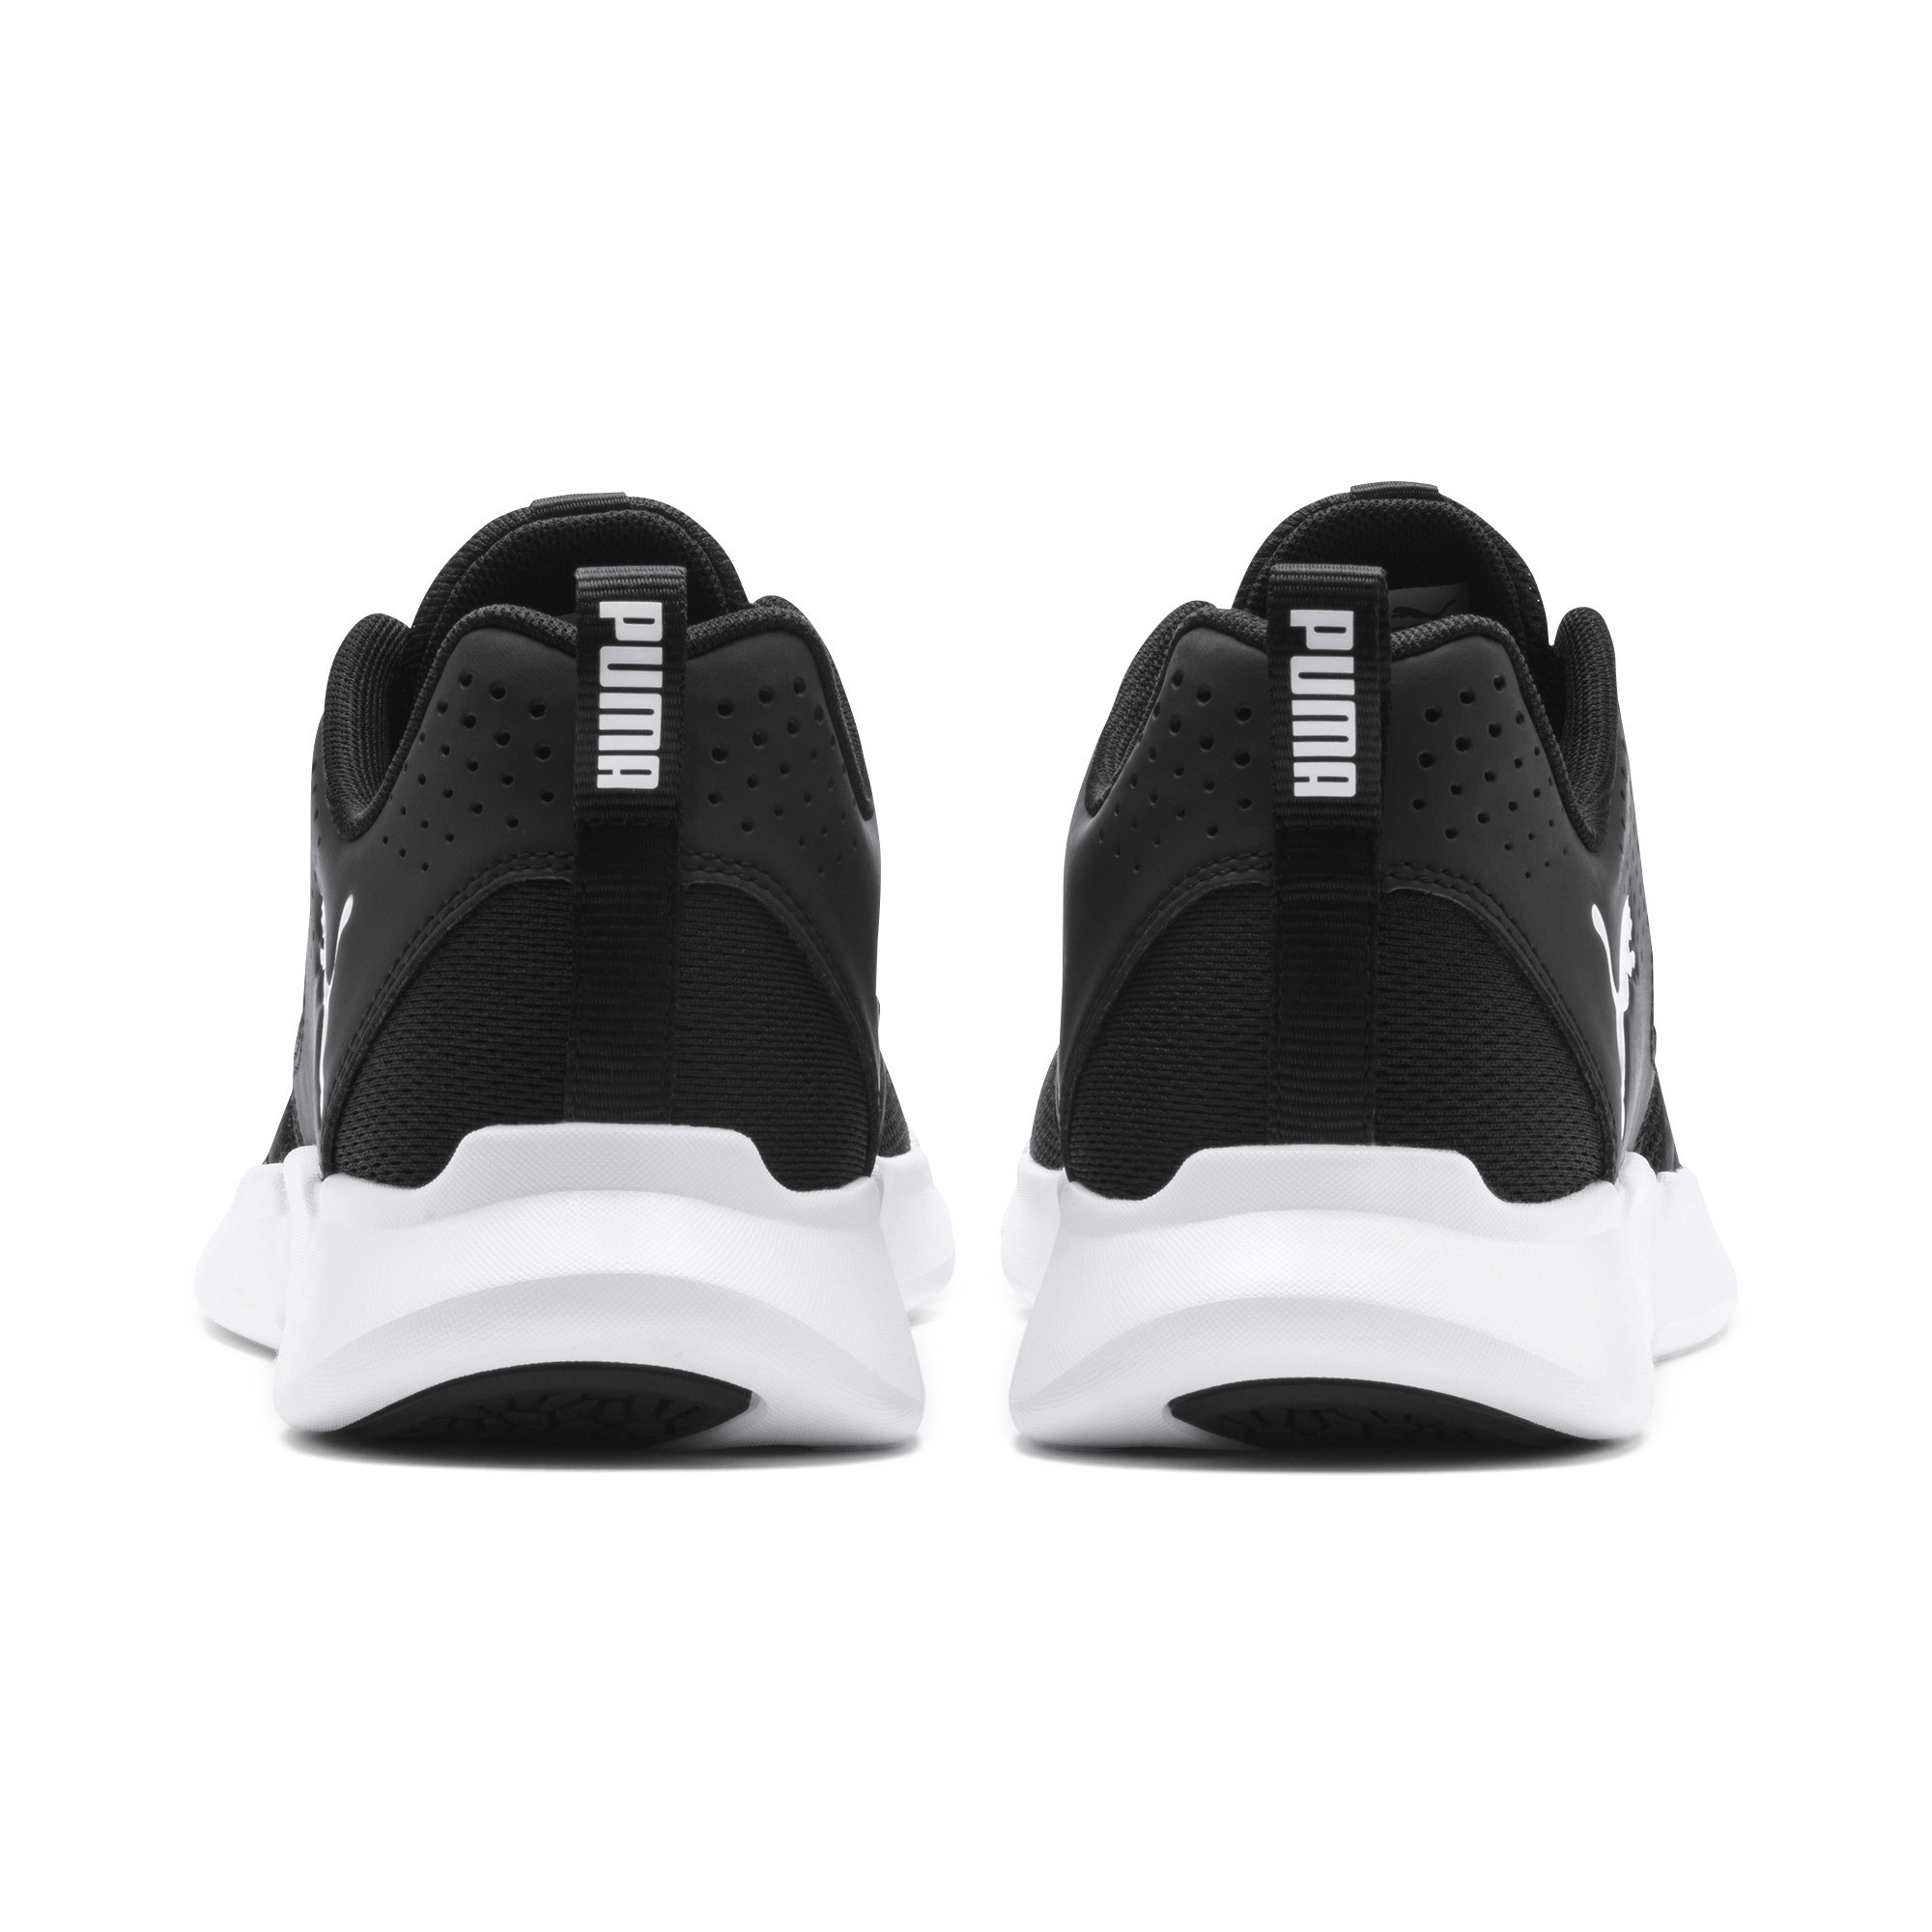 PUMA-INTERFLEX-Modern-Men-039-s-Sneakers-Unisex-Shoe-Running thumbnail 13